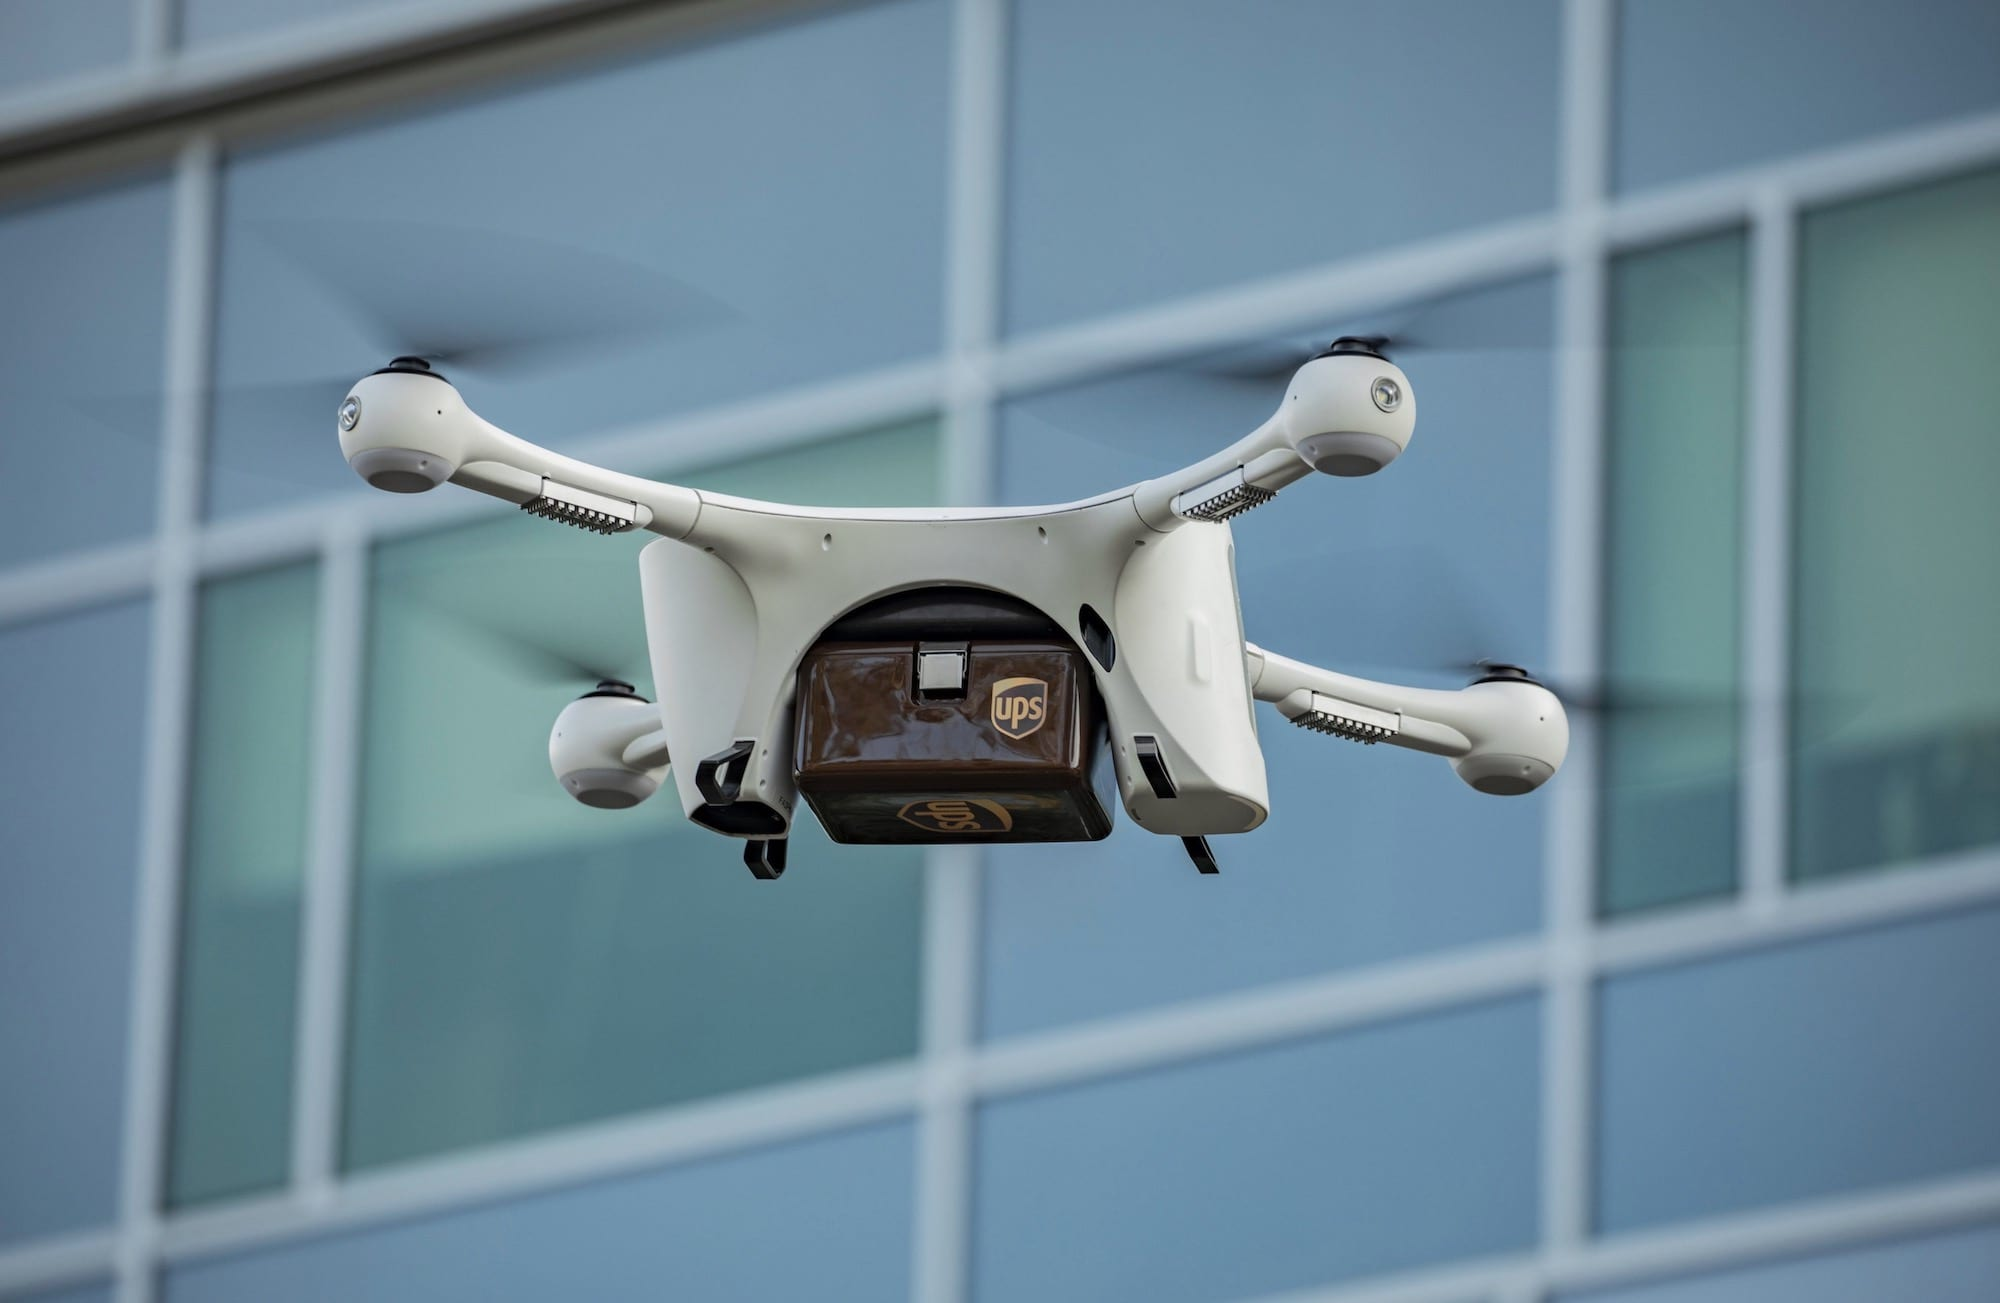 Matternet M2 drone used by UPS Flight Forward in new hospital delivery network